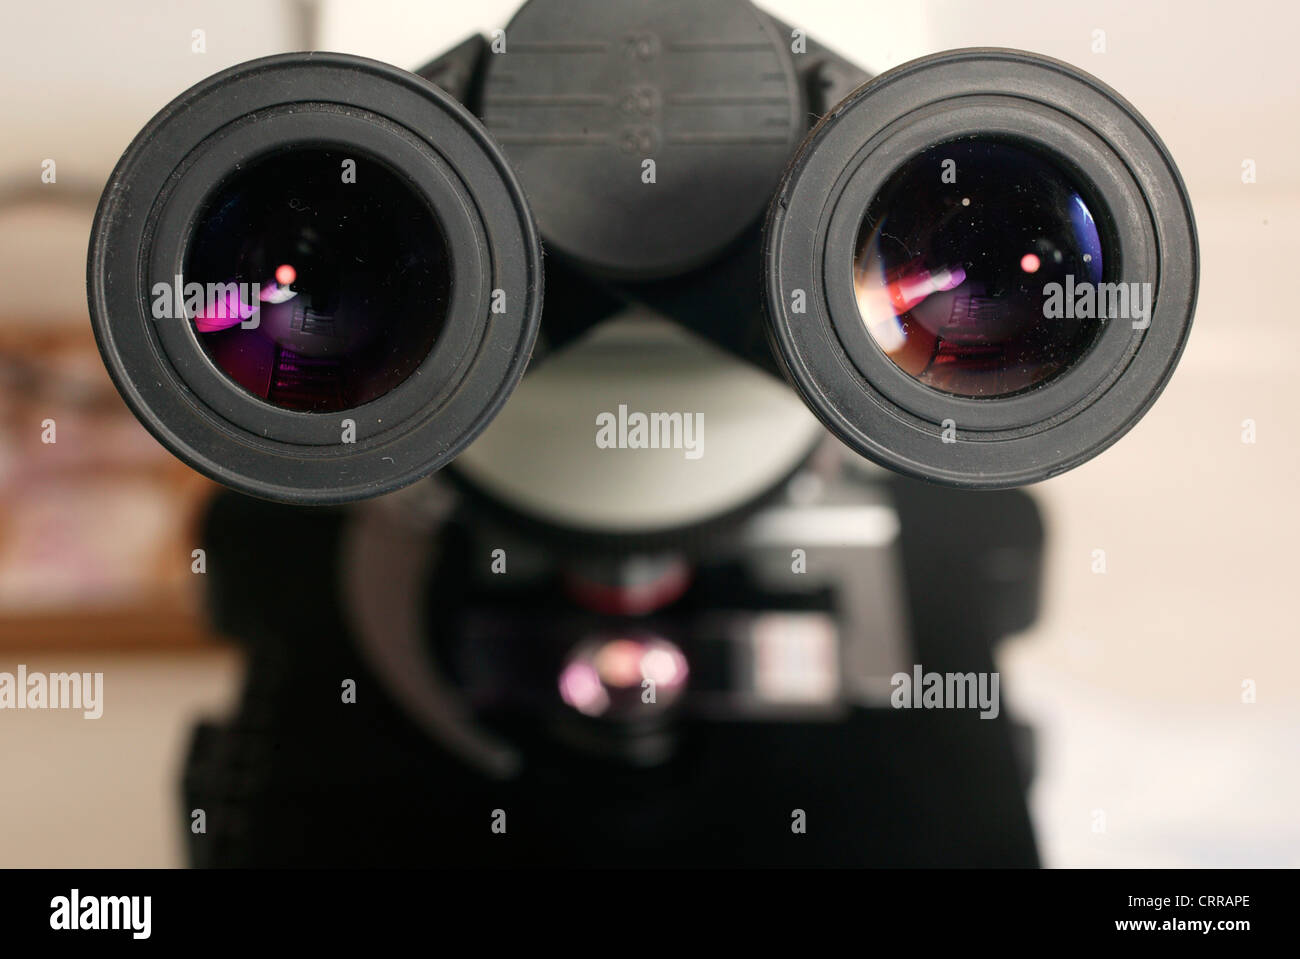 The viewing lens of a microscope. - Stock Image